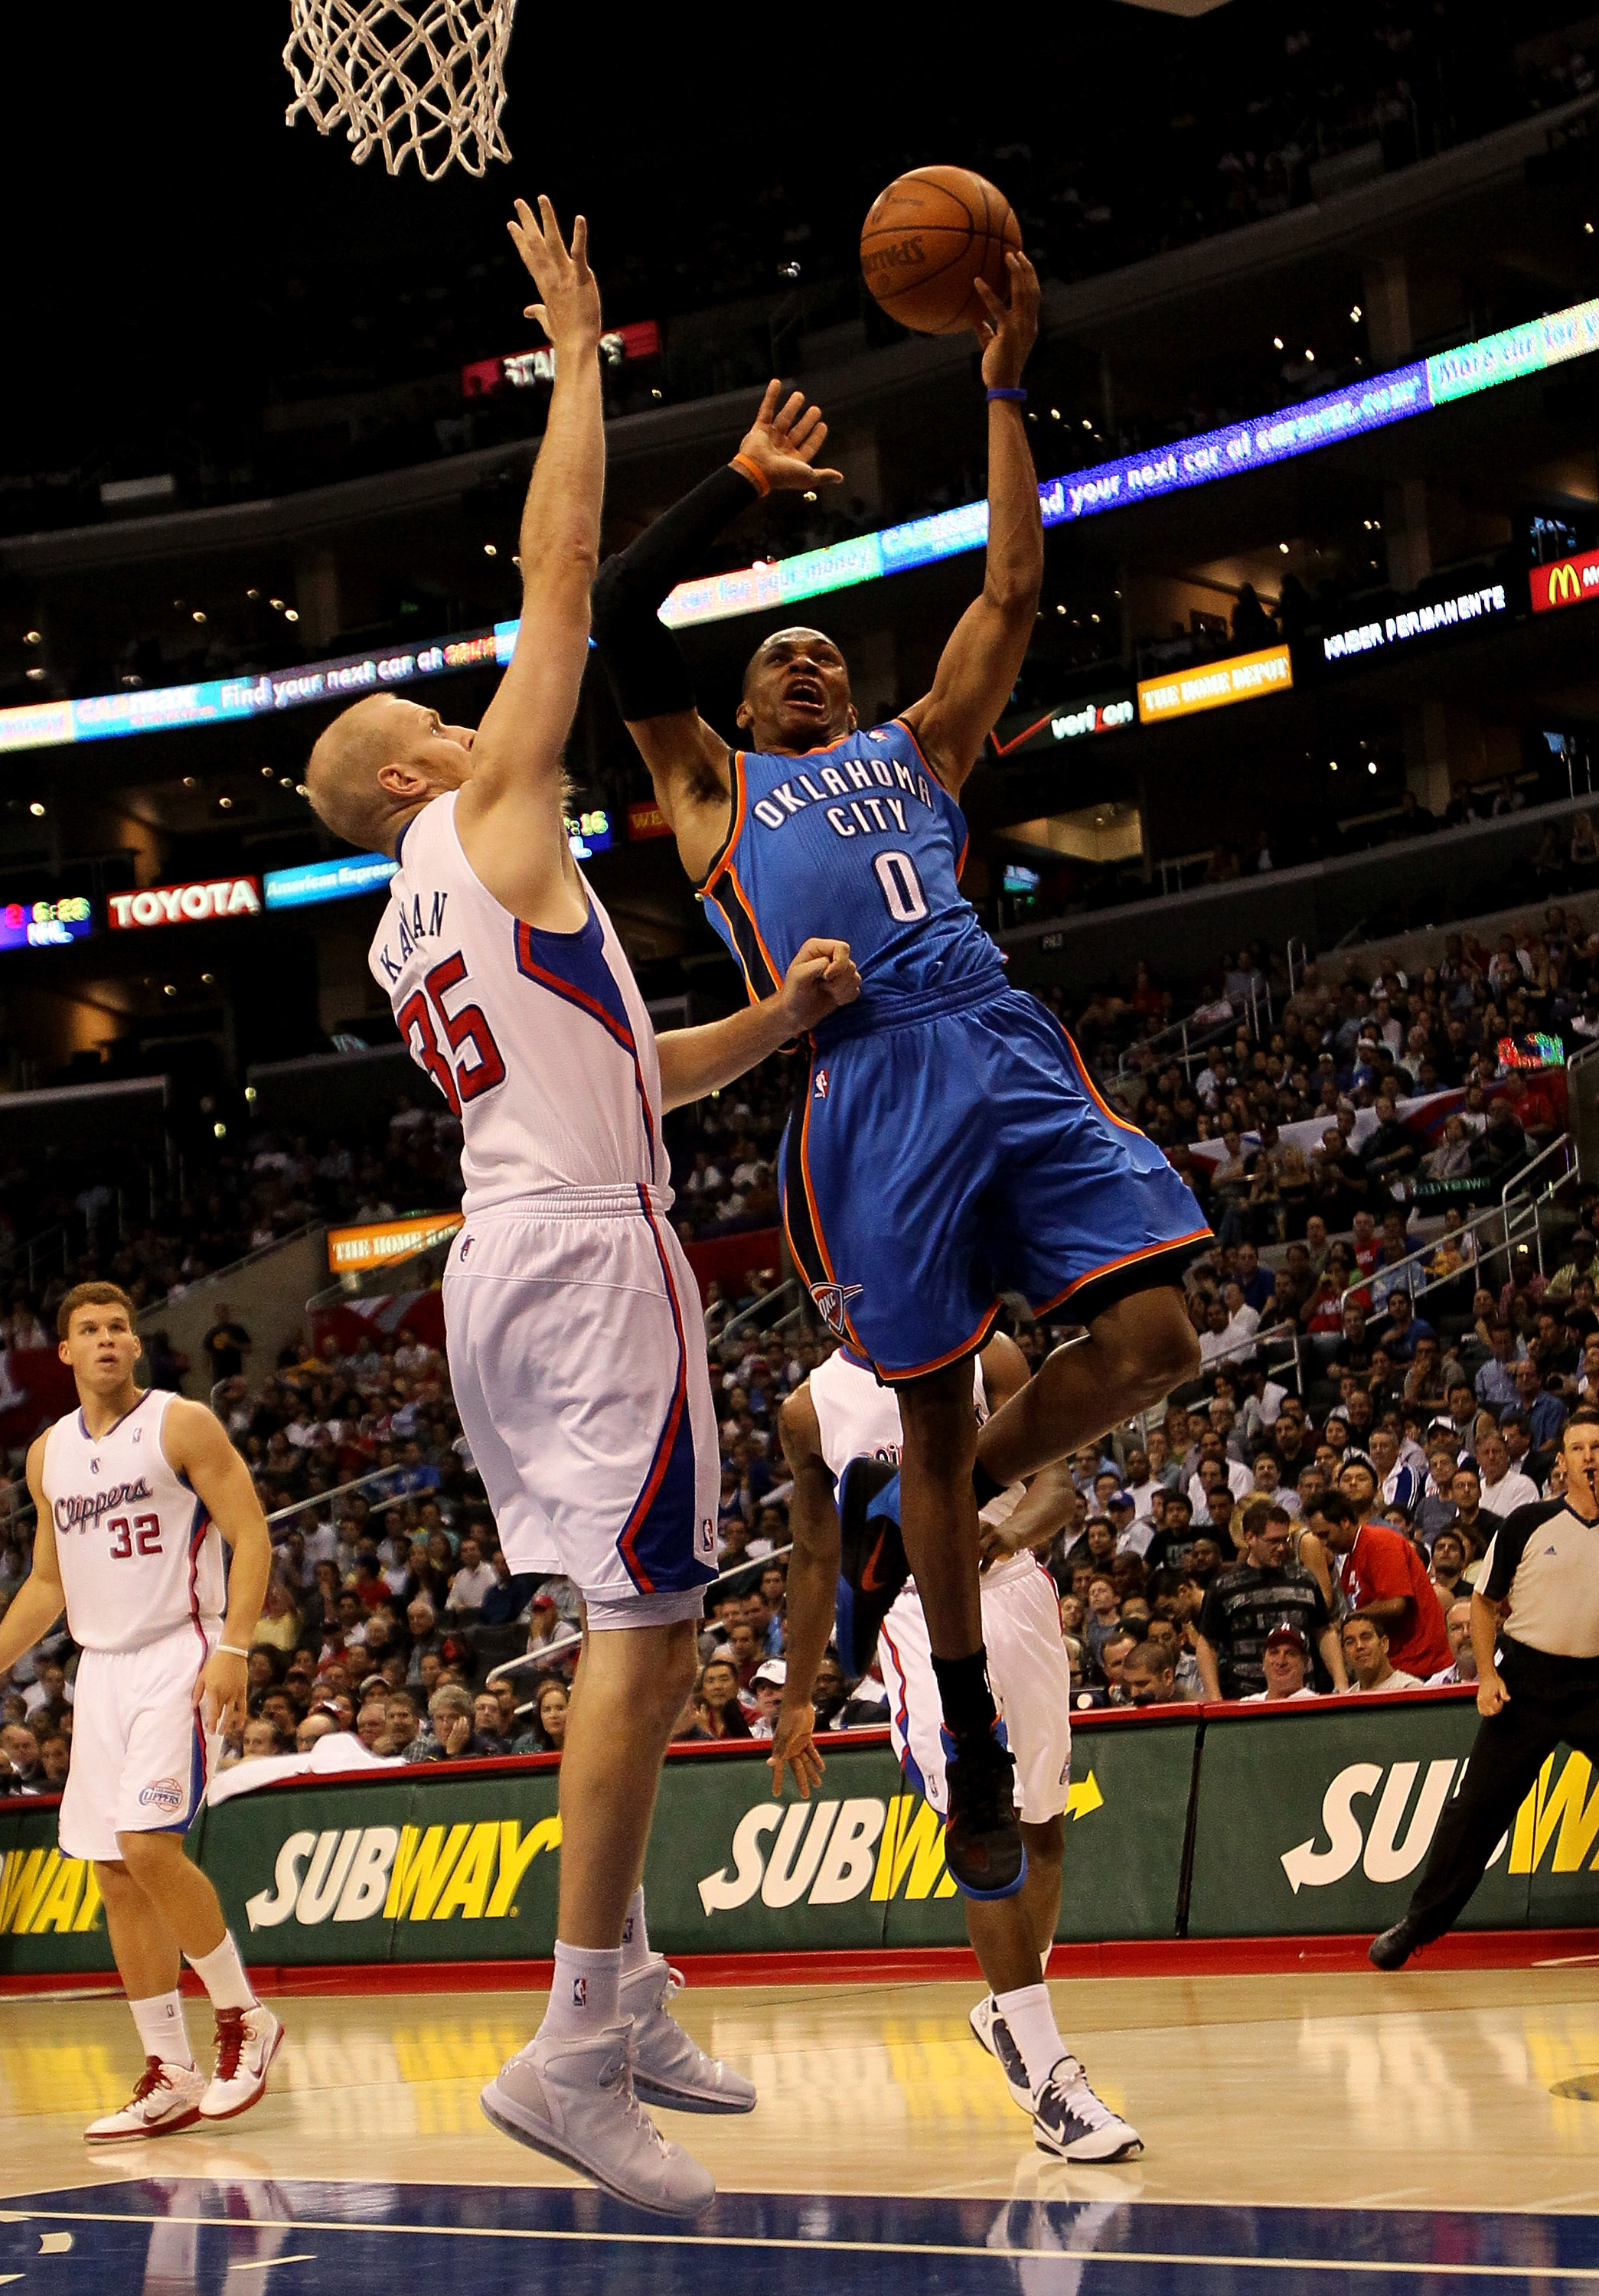 LOS ANGELES - NOVEMBER 3:  Russell Westbrook #0 of the Oklahoma City Thunder shoots over Chris Kaman #35 of the Los Angeles Clippers at Staples Center on November 3, 2010 in Los Angeles, California.   The Clippers won 107-92.  NOTE TO USER: User expressly